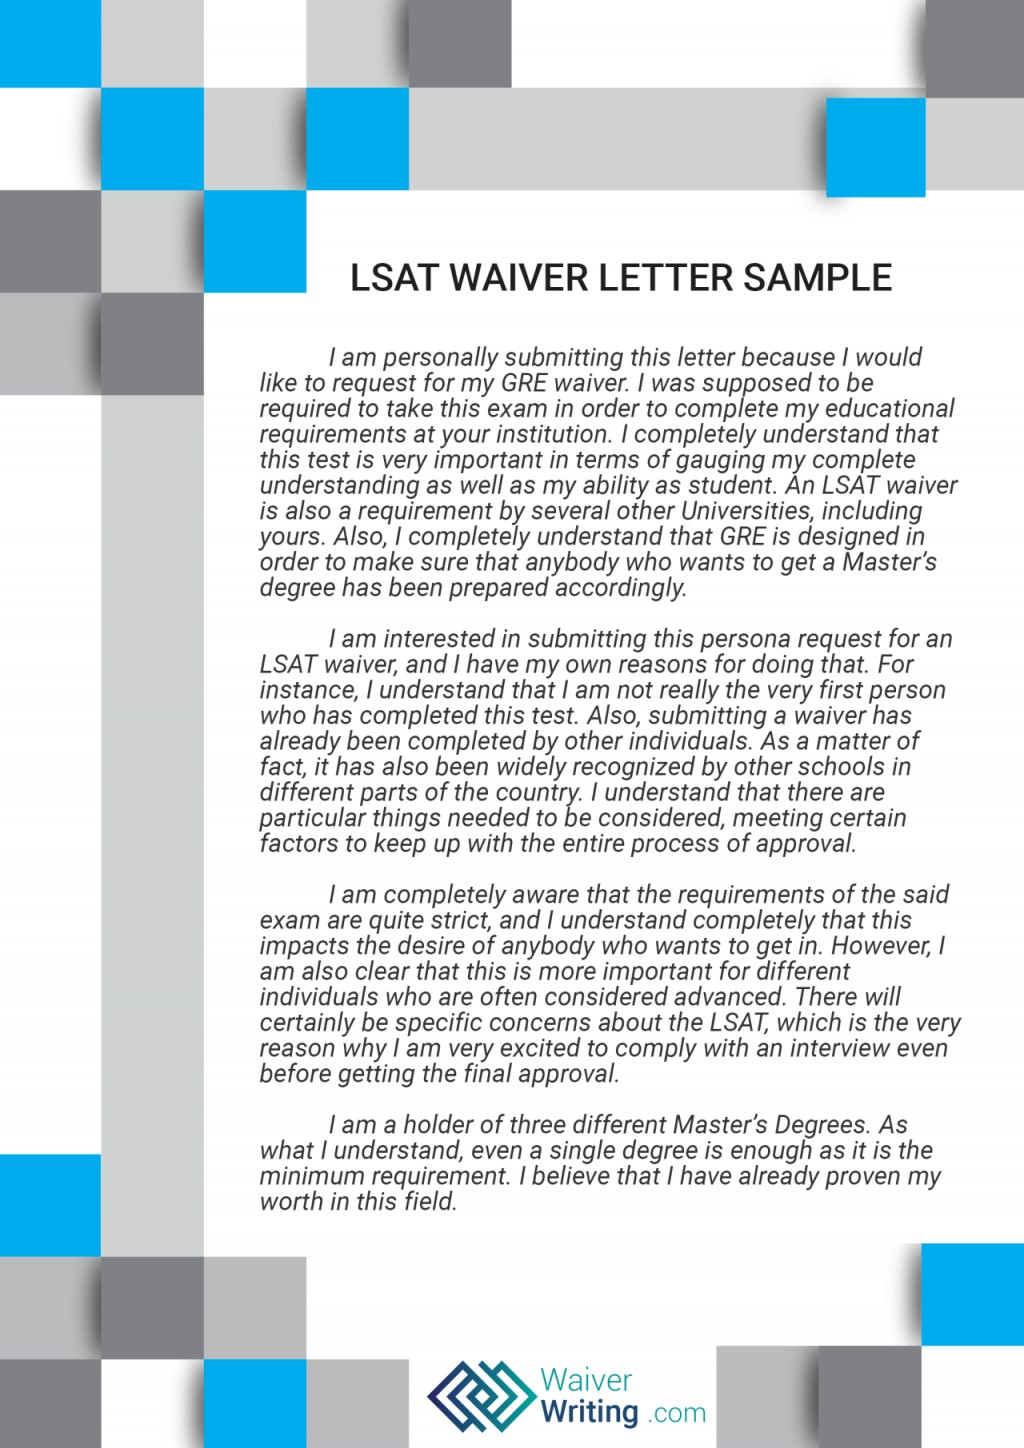 010 Essay Example Tumblr Ode077tgcl1vfim2xo1 1280 Gmat Shocking Sample Waiver Topics Awa Essays Free Download Large